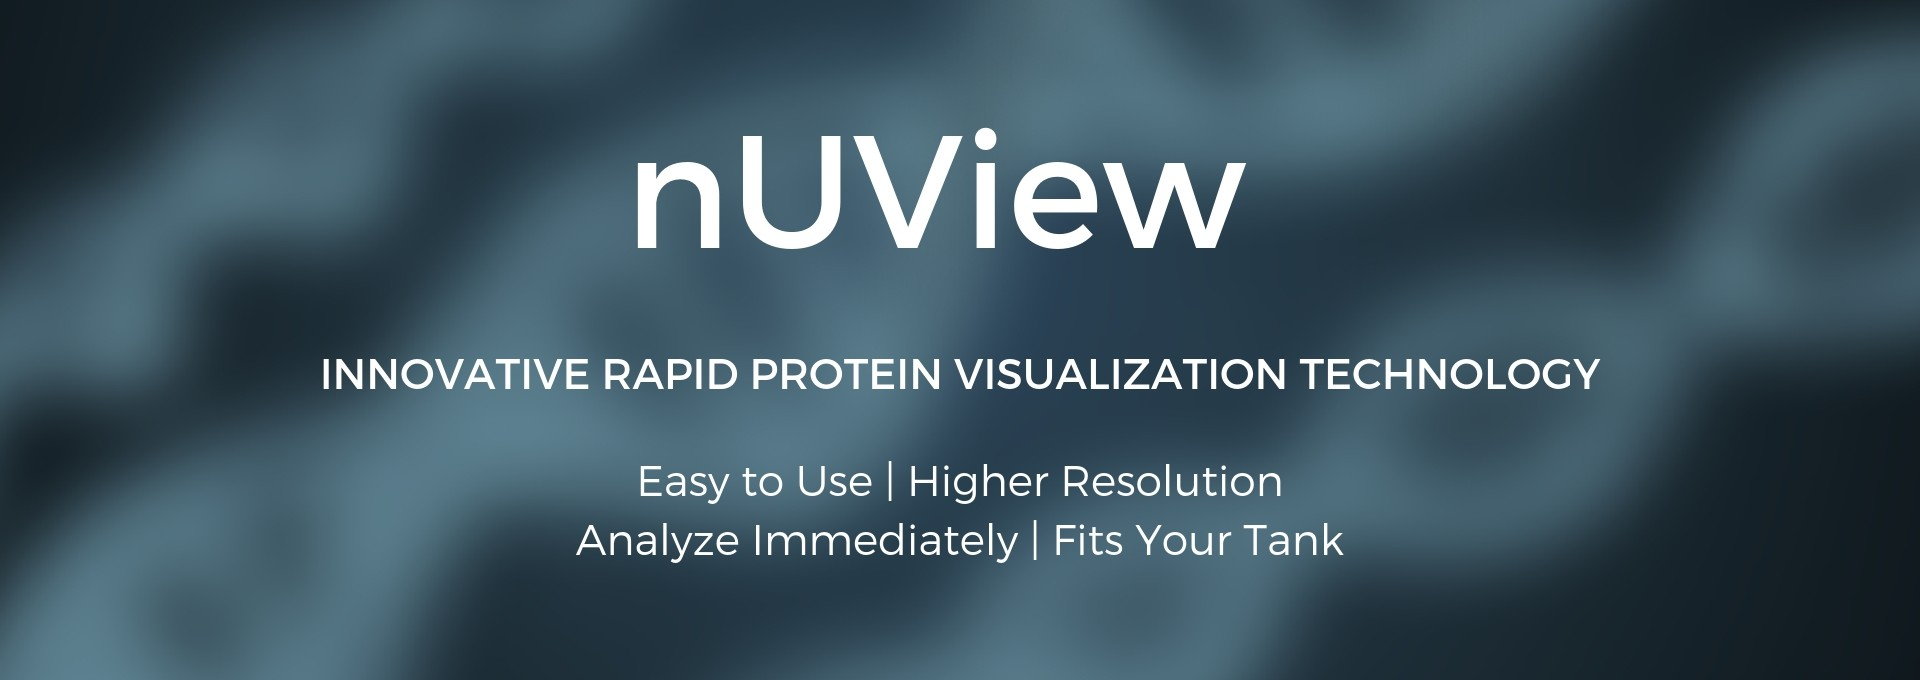 Innovative Rapid Protein Visualization Technology for Protein Electorphoresis